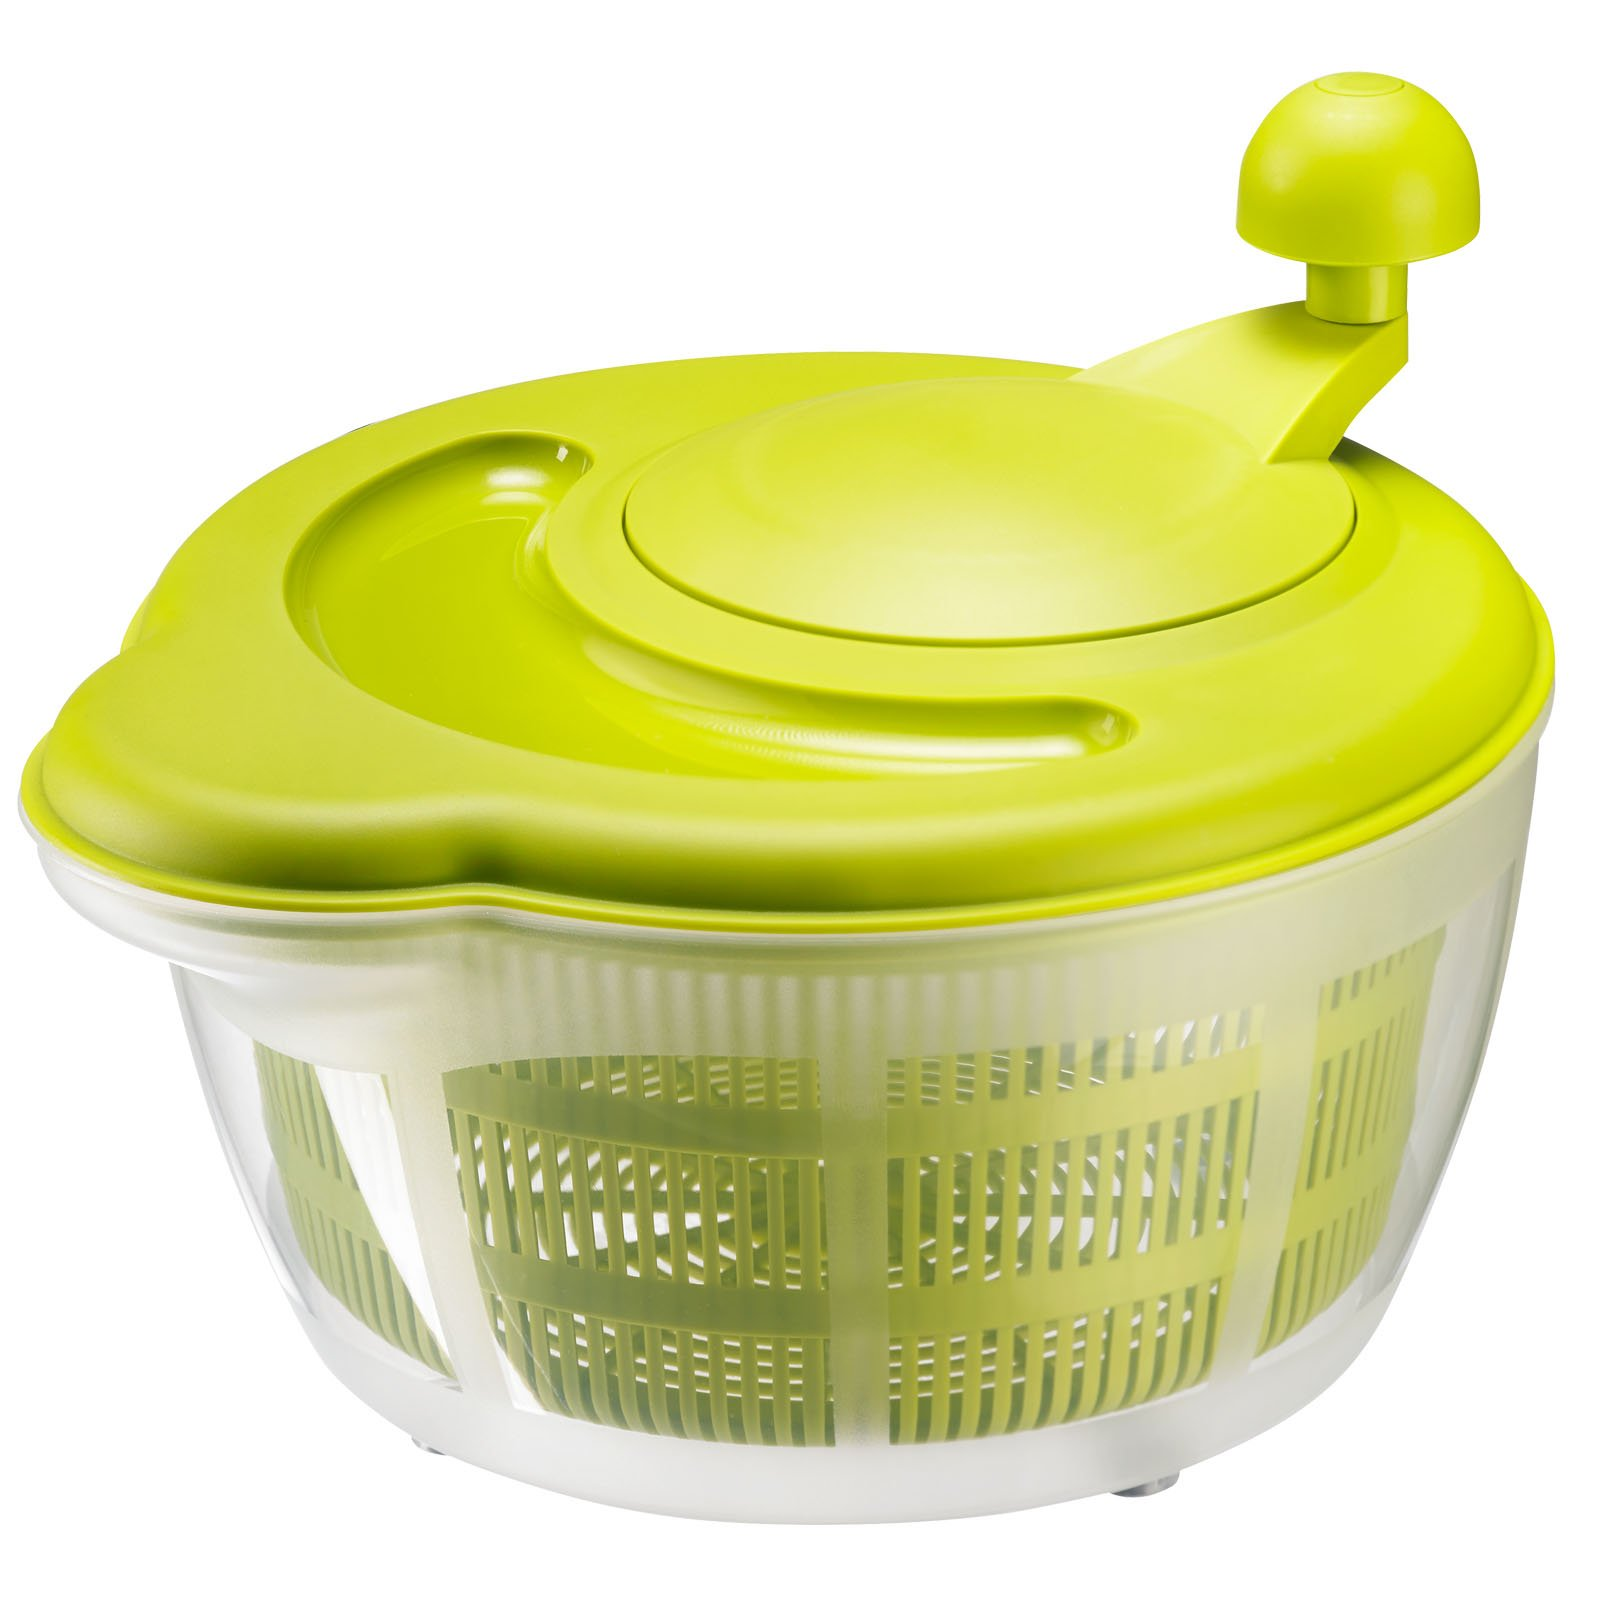 Westmark German Vegetable and Salad Spinner with Pouring Spout and Non-Slip Feet